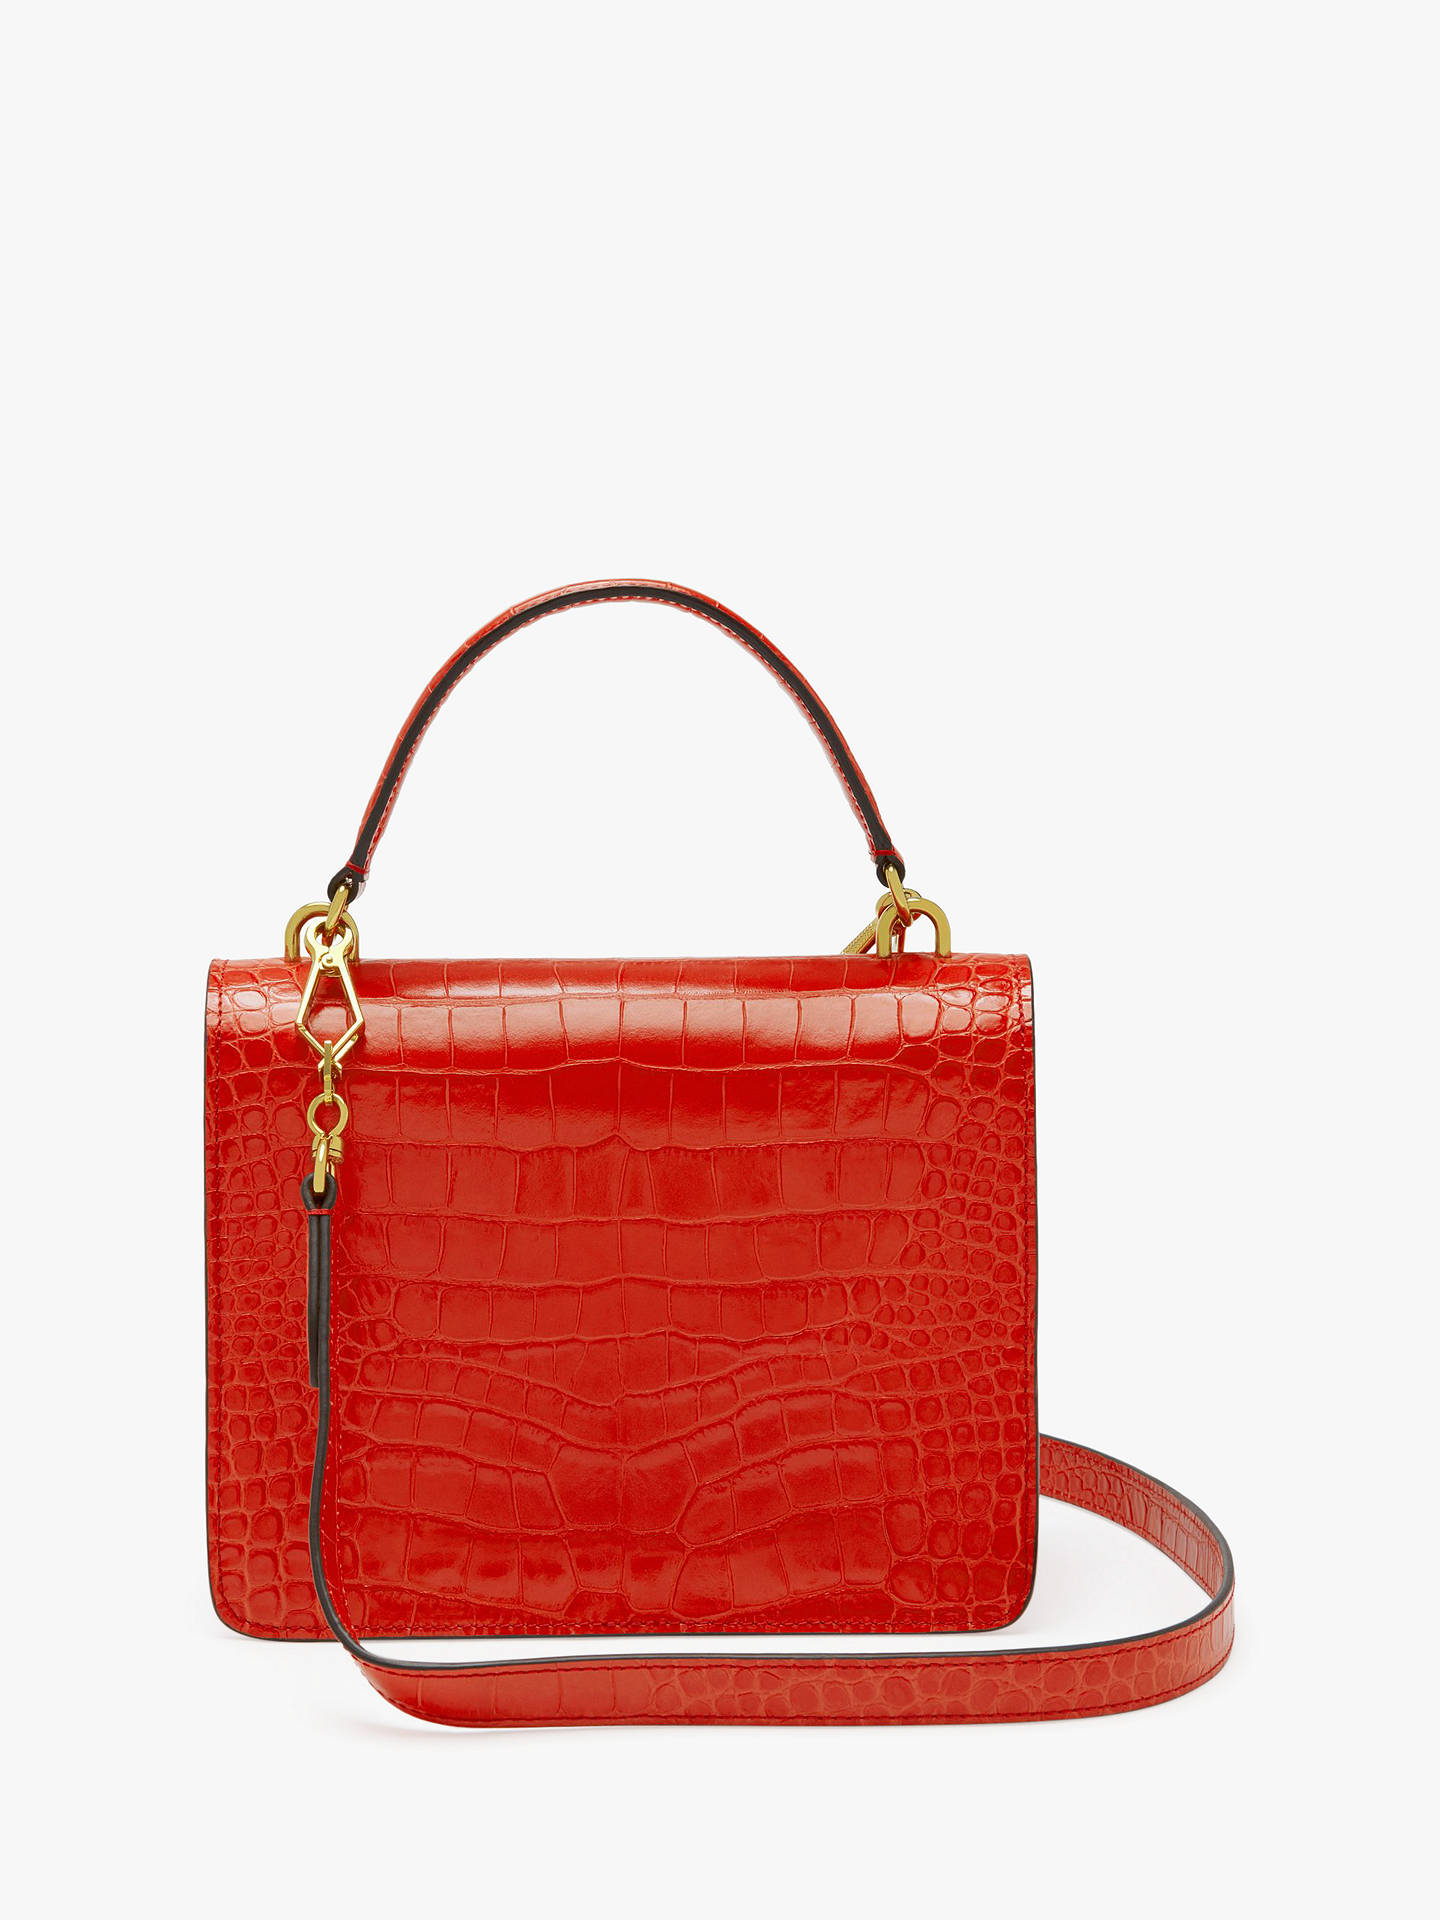 28469a04d146 Mulberry Harlow Croc Embossed Leather Satchel Bag at John Lewis ...